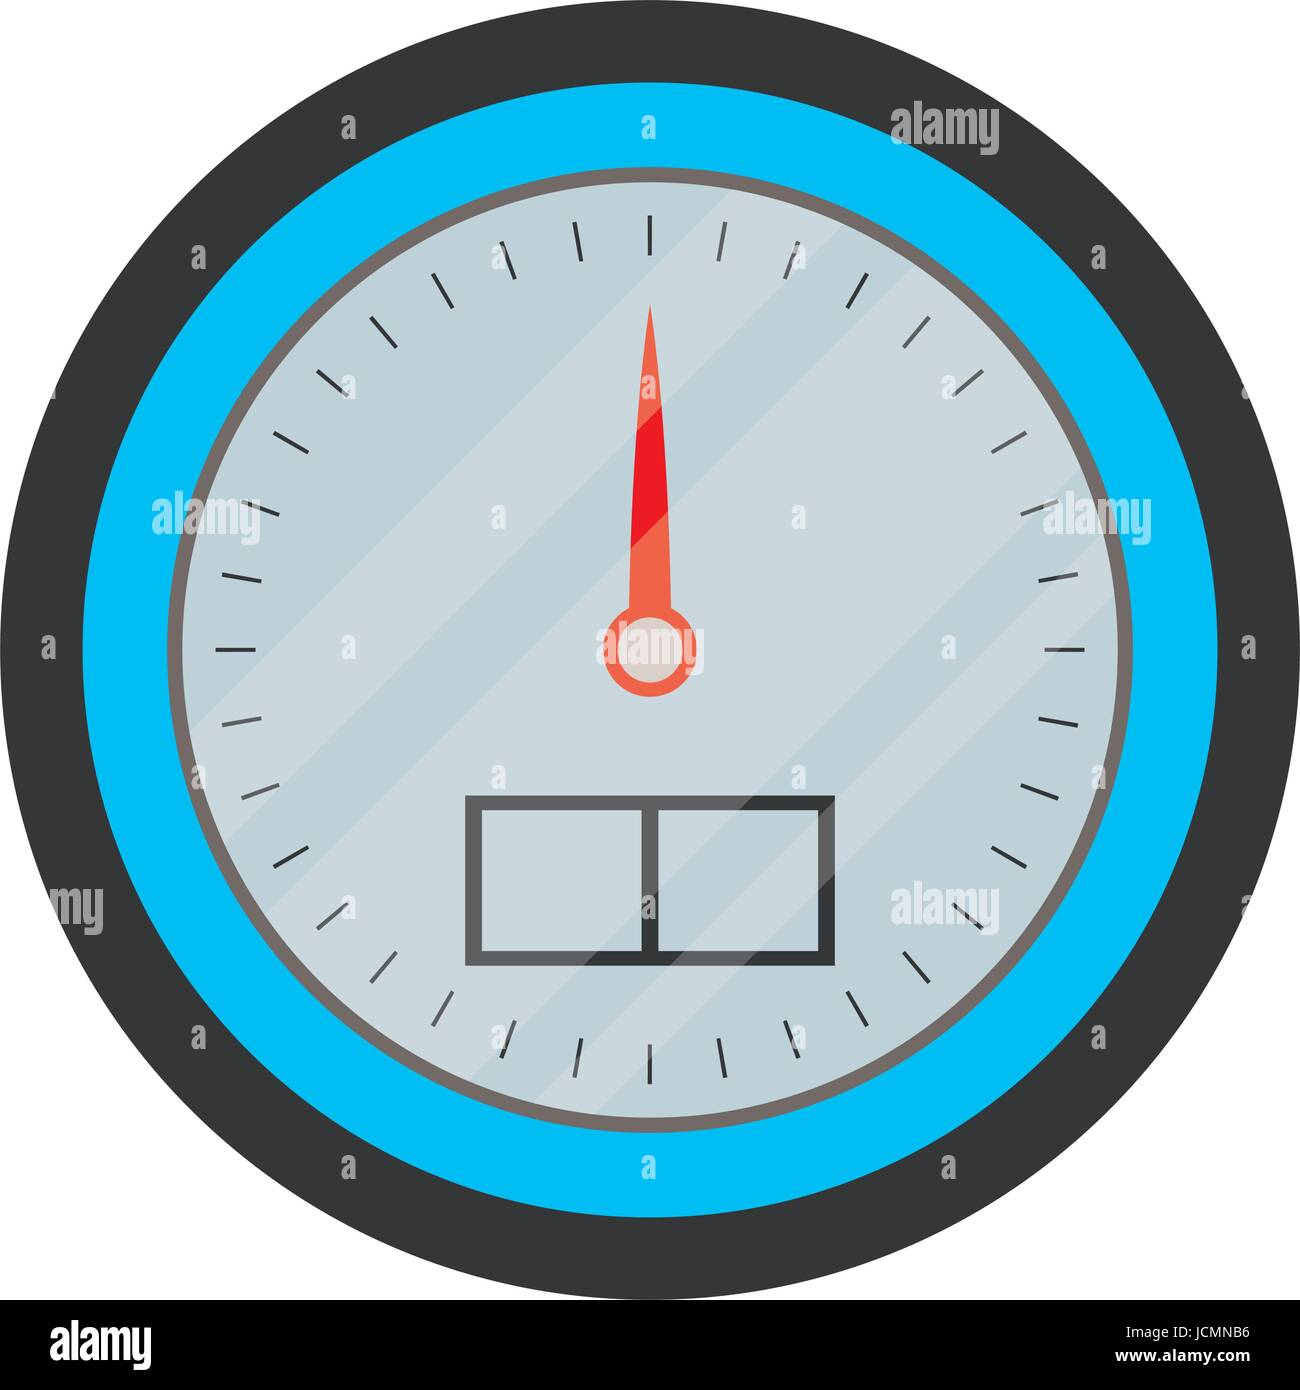 Color Measurement Stock Photos Images Alamy Colorful Geometric Shapes Circuit Board Pattern Square Wall Clock Image Of Water Meter Closeup